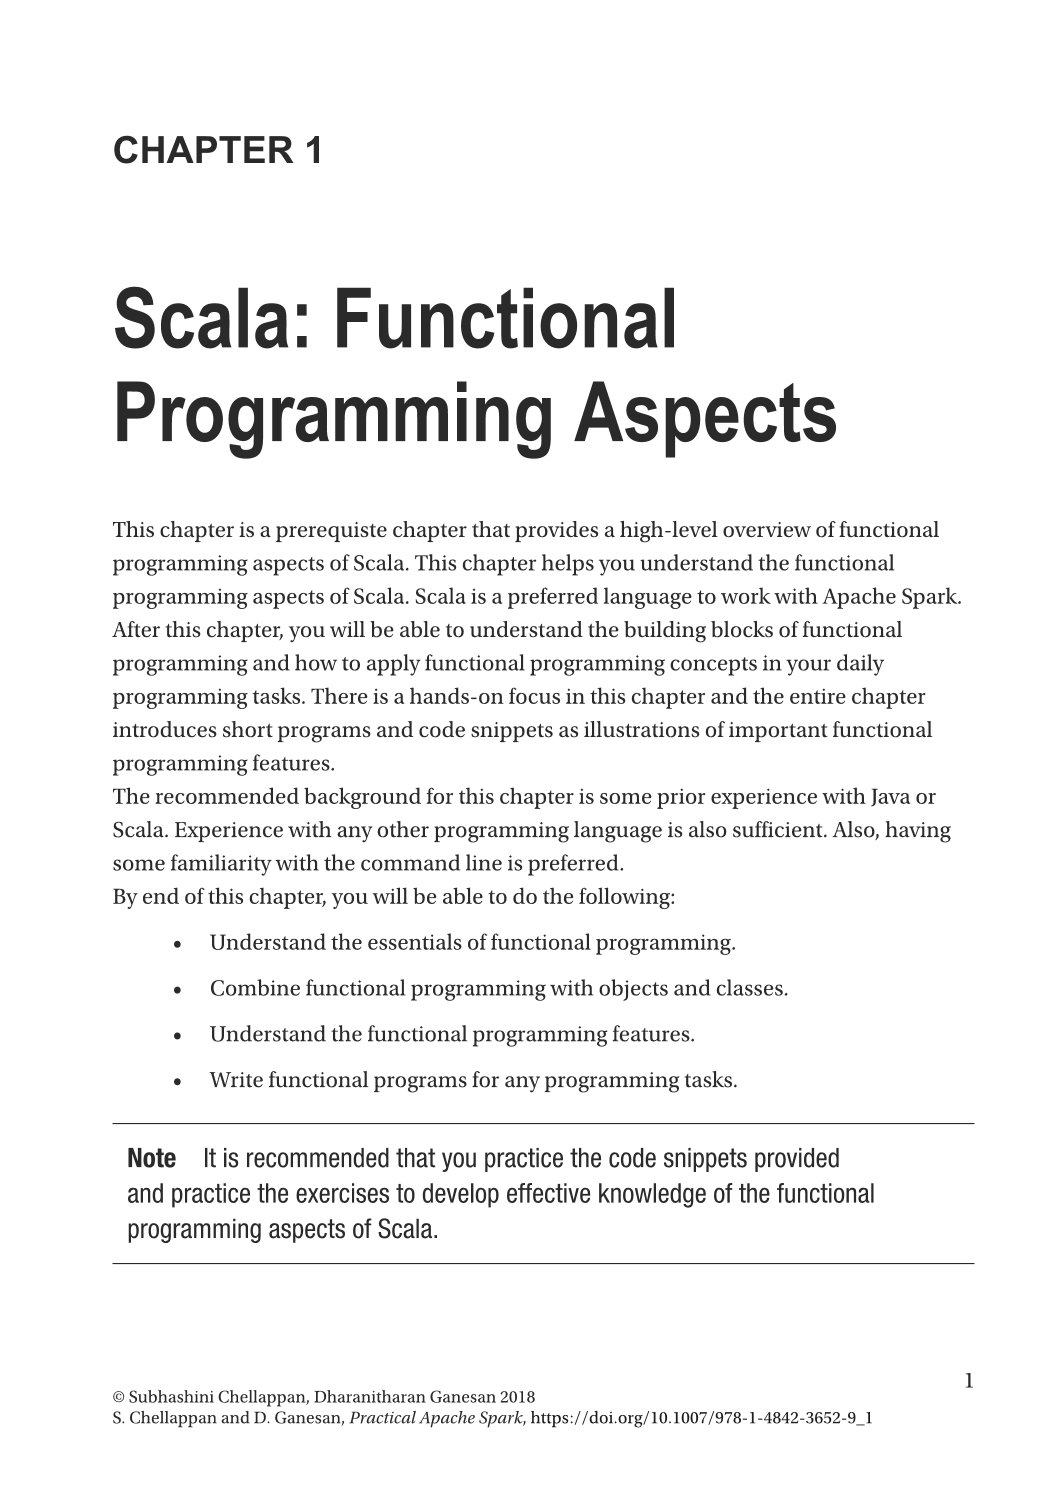 Practical Apache Spark: Using the Scala API-preview-1